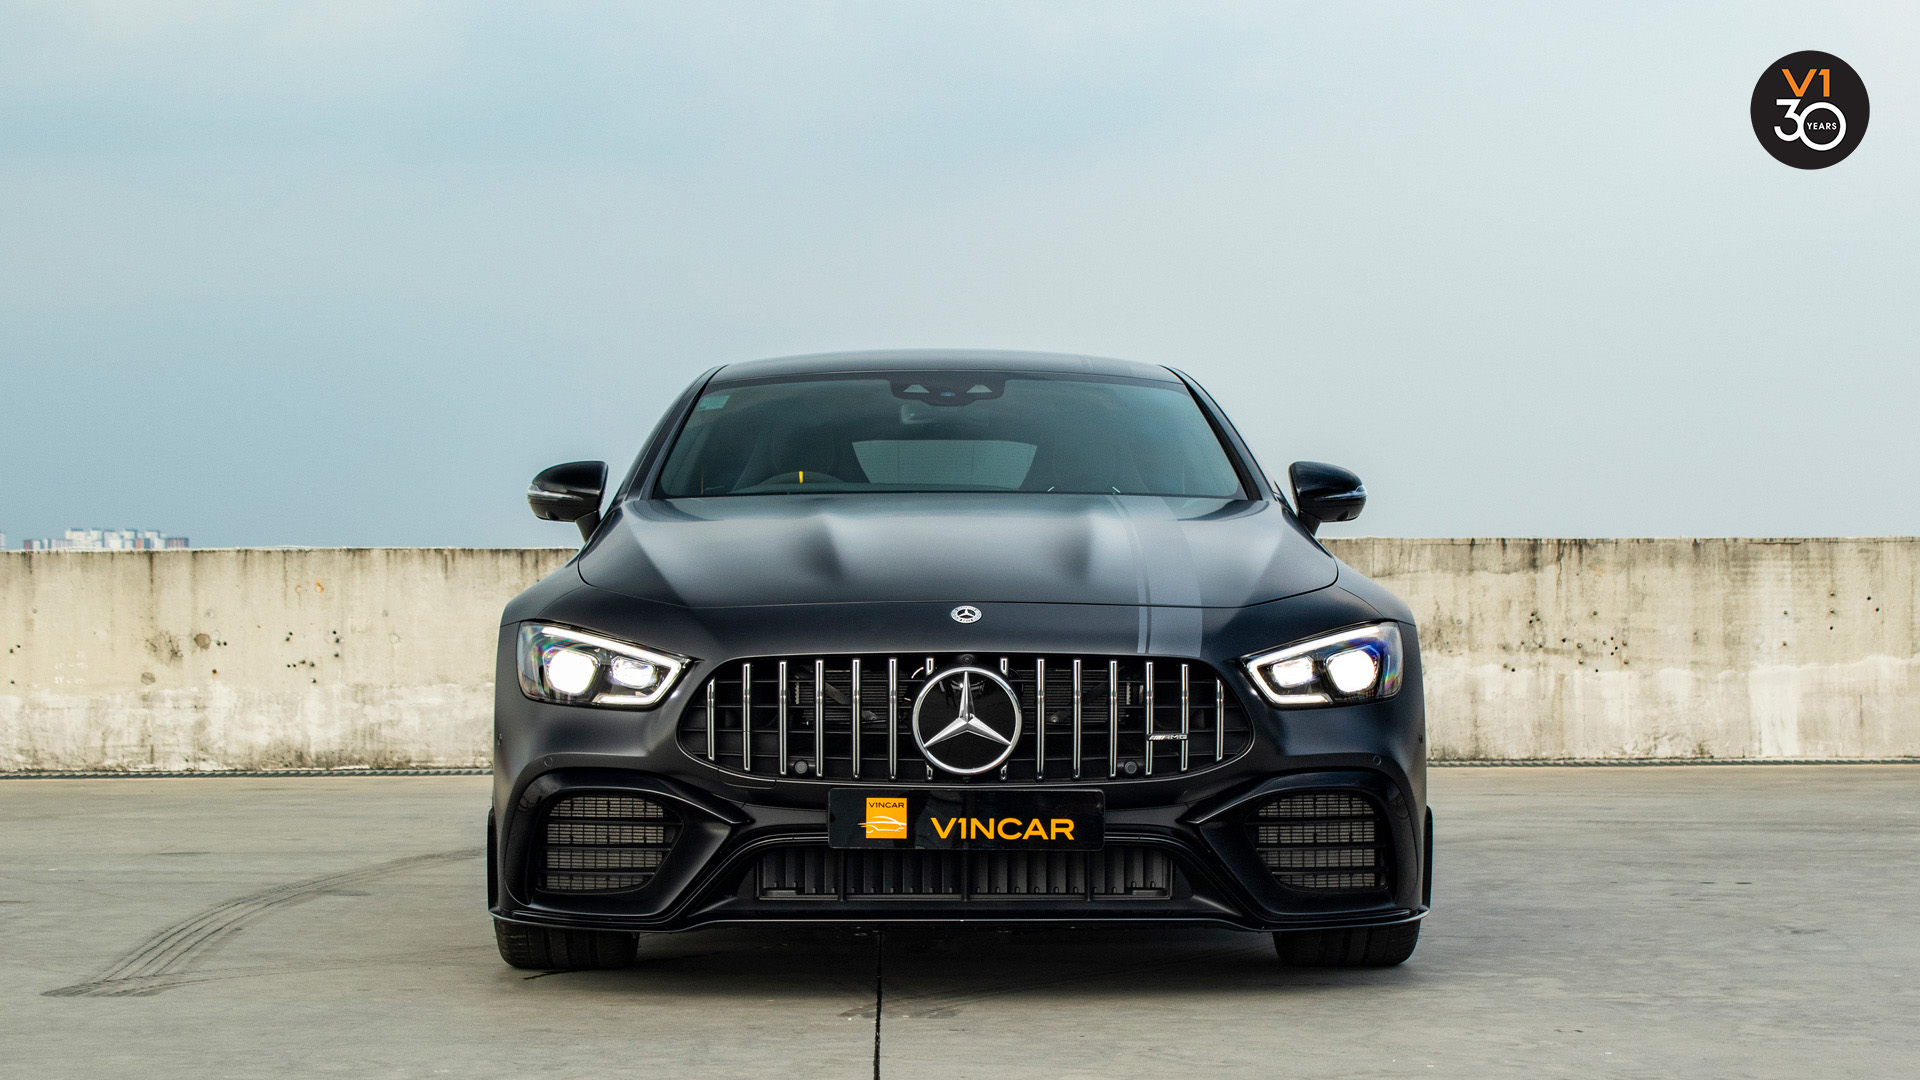 Mercedes GT63 S 4Matic+ Edition 1 AMG - Front